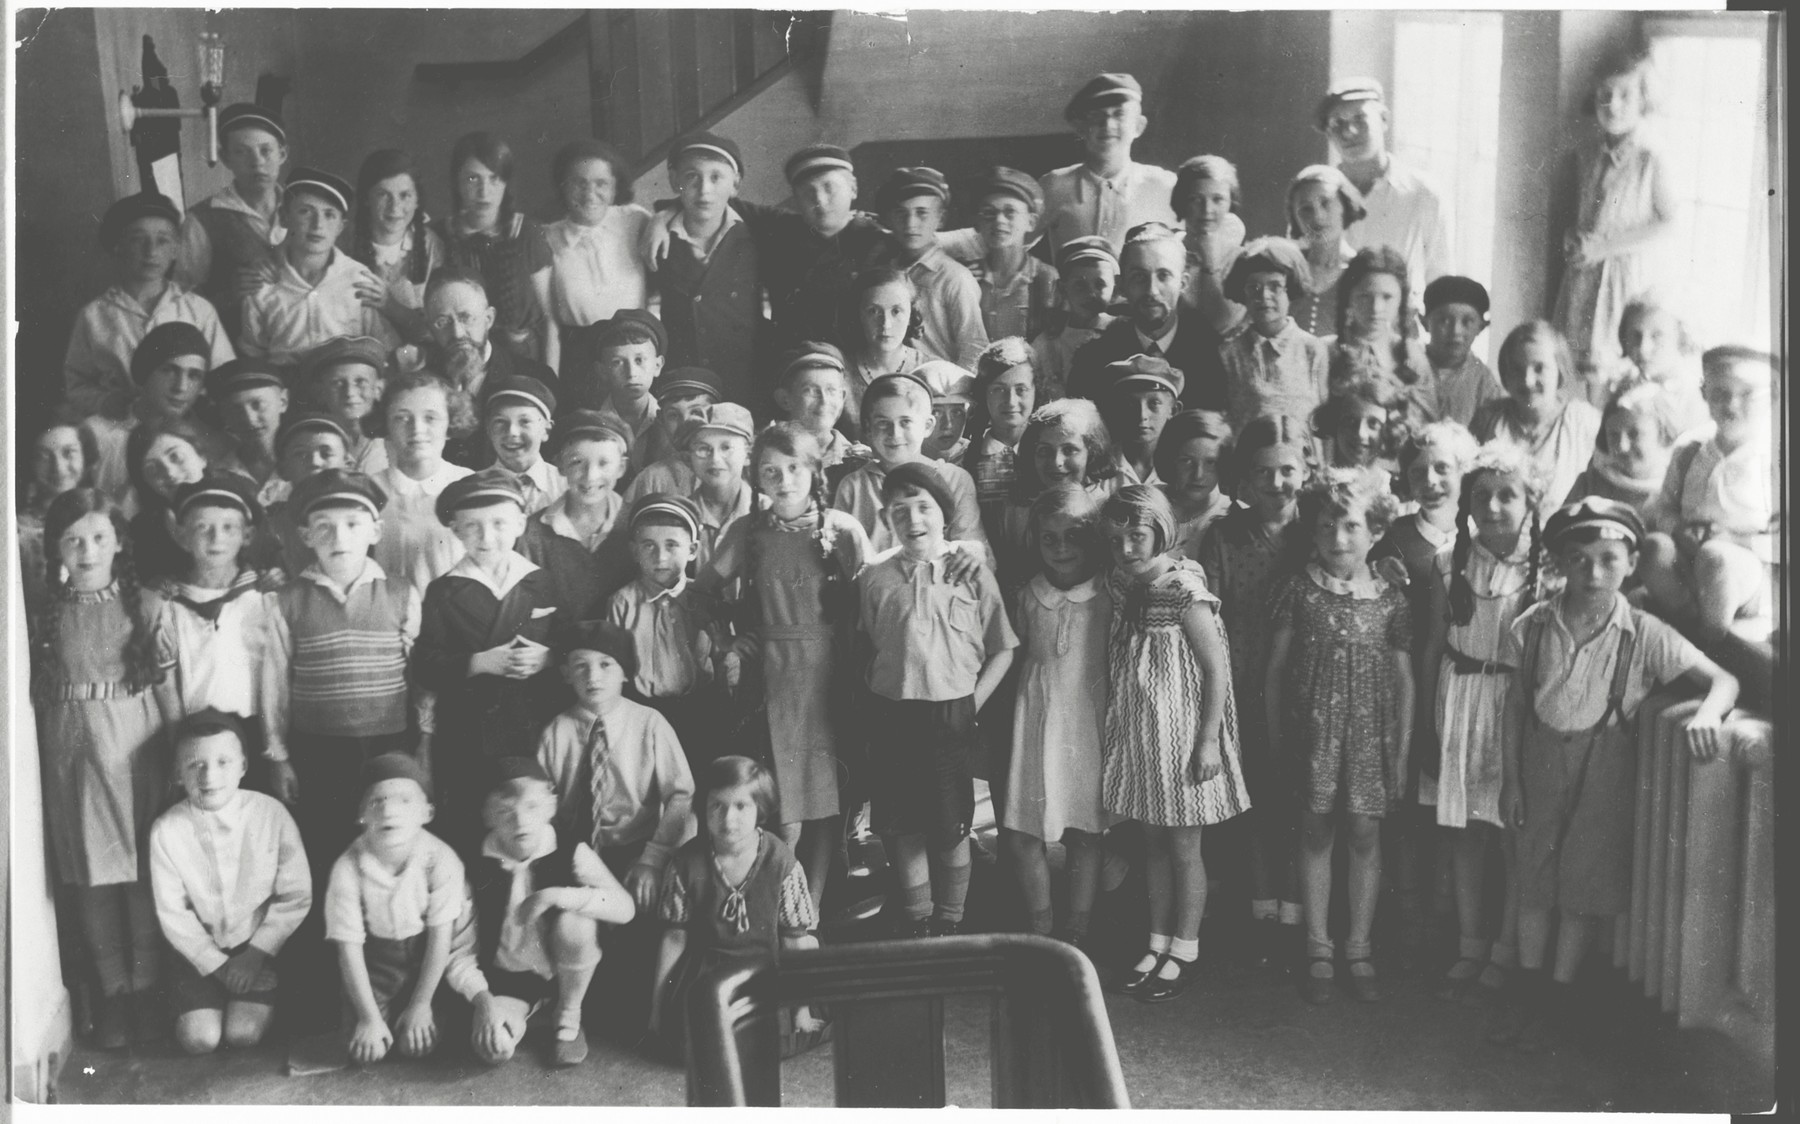 Rabbi Baruch Posner poses with the children in his Sunday religious school in Kiel.